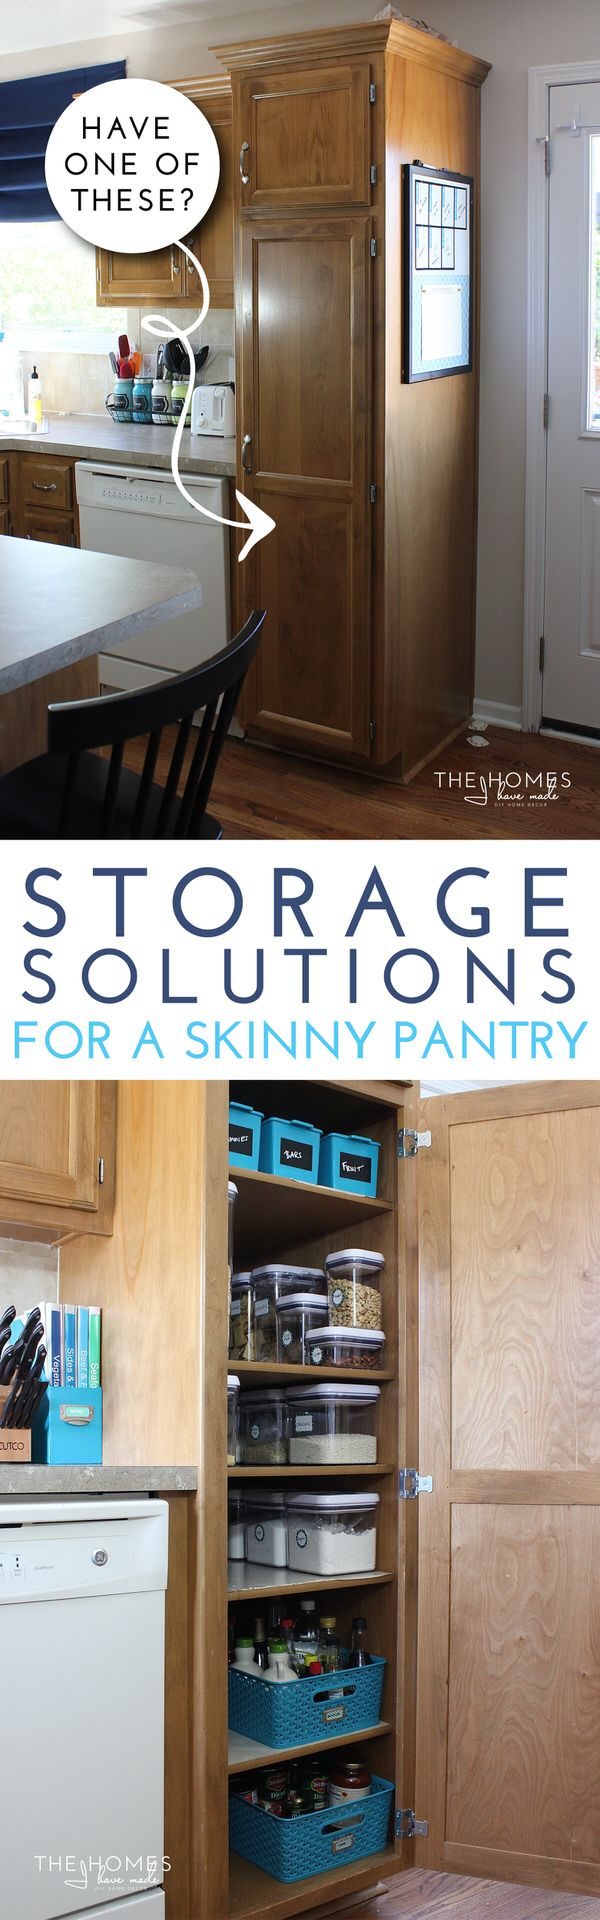 Built in kitchen pantry cabinet - Organize This Storage Solutions For A Skinny Pantry